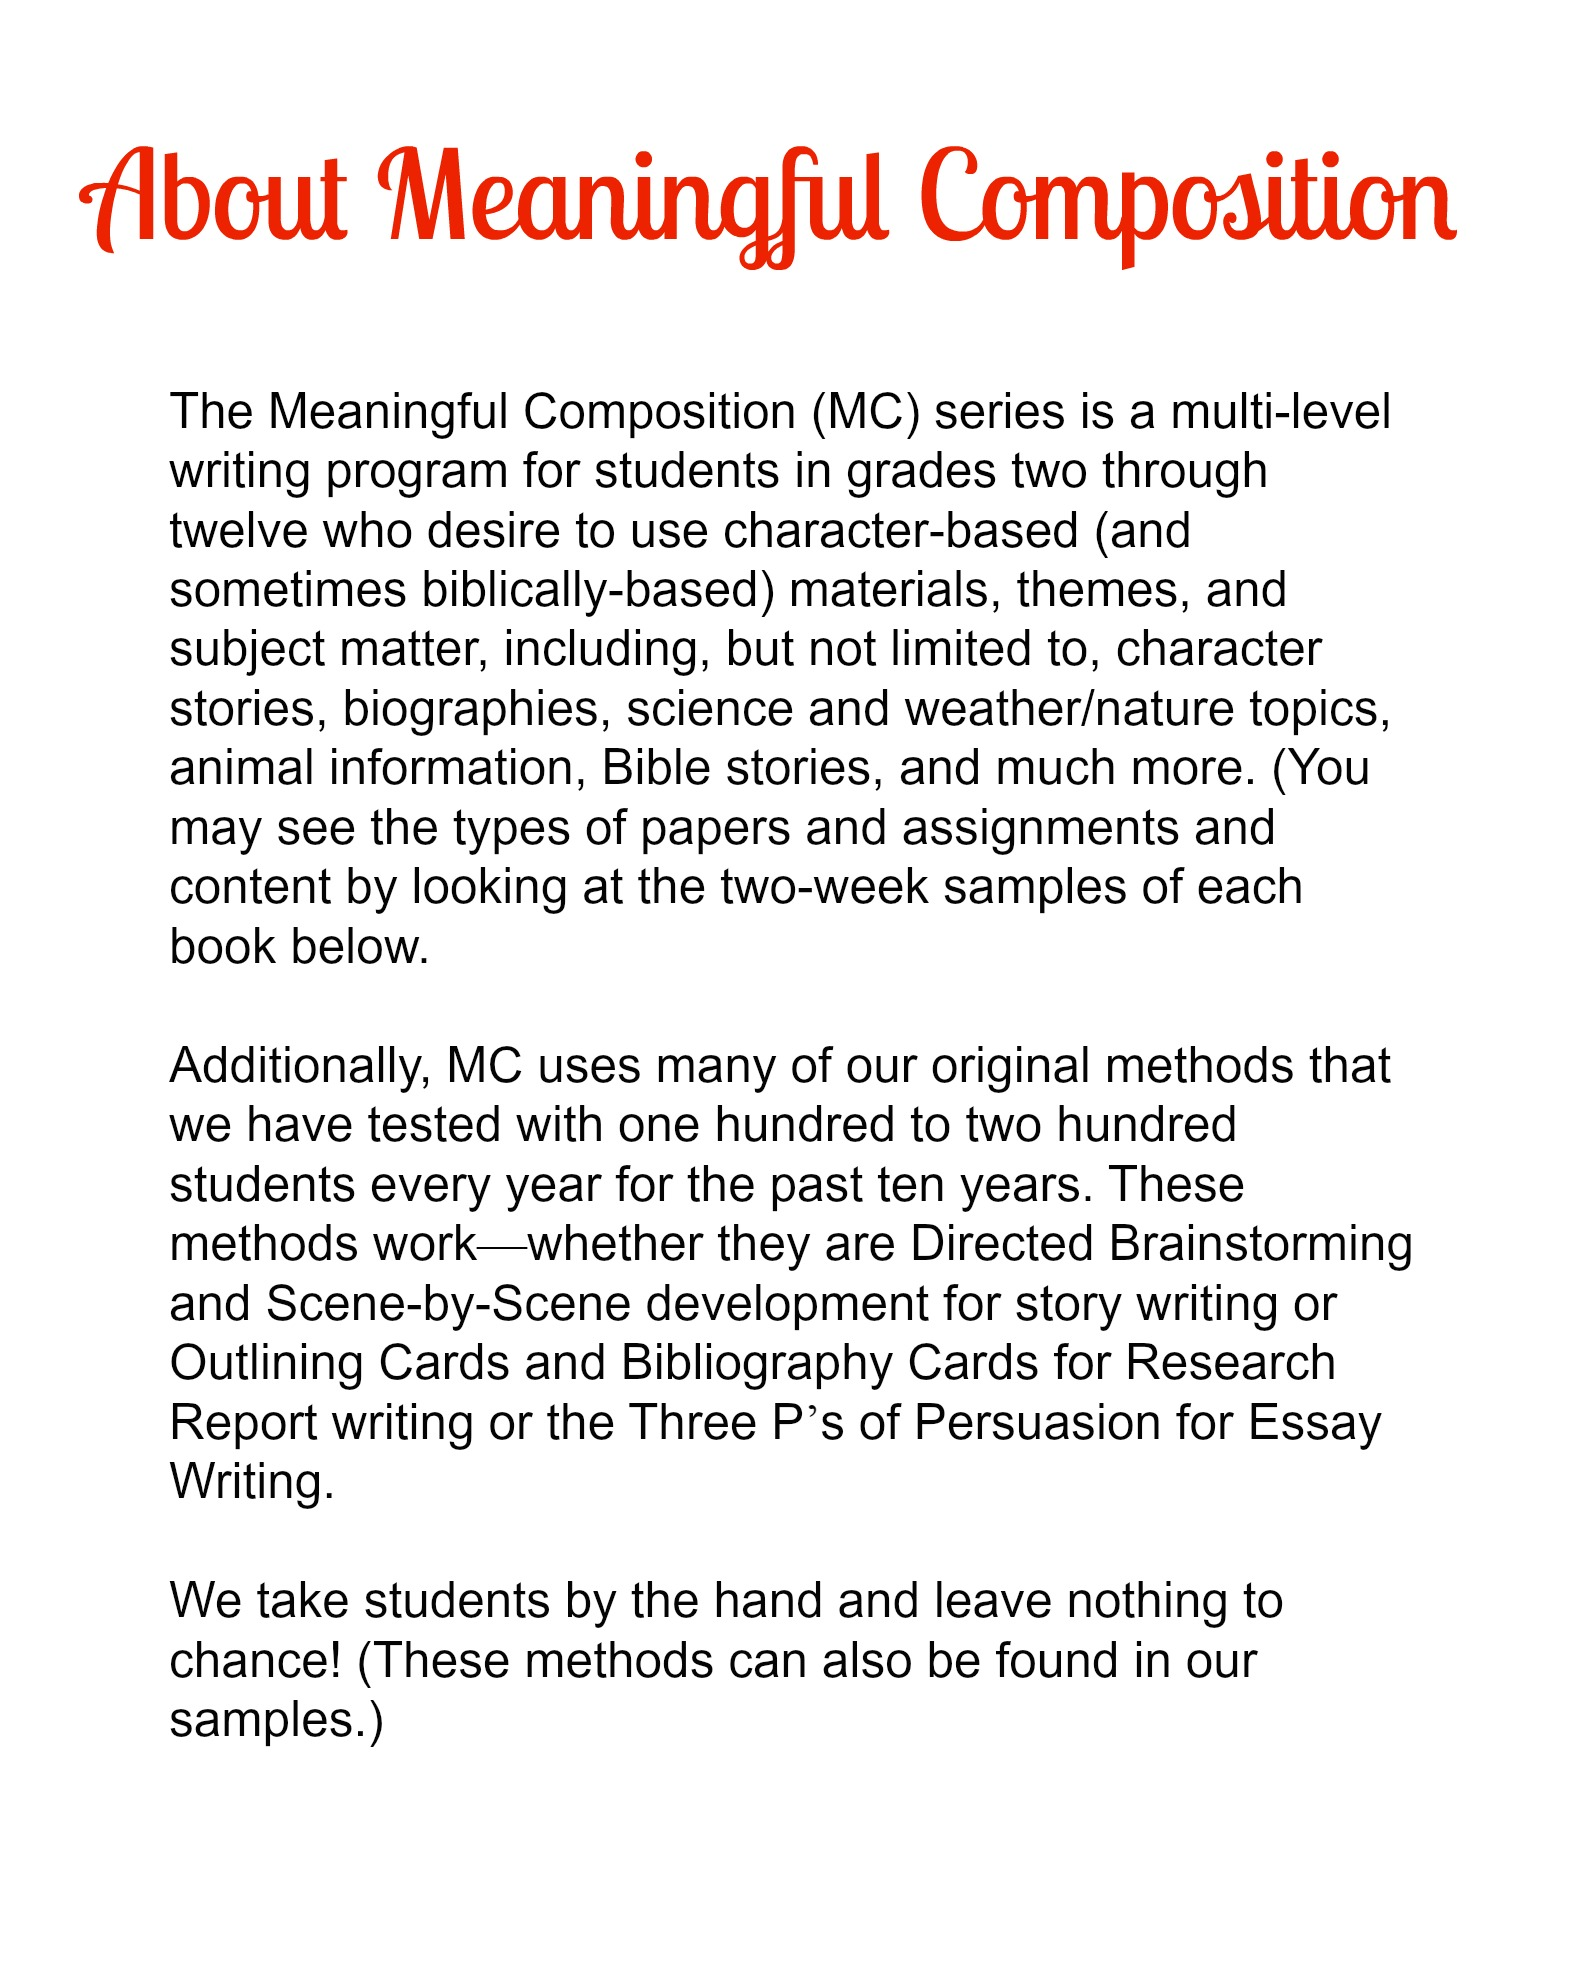 022 Examples Of Persuasive Essays Expository Essay Introductions Creative Writing Course Paragraph On Bullying About Meaningful Compos Cyber How To Prevent Five Excellent For Fifth Graders Written By 5th 3rd Grade Full